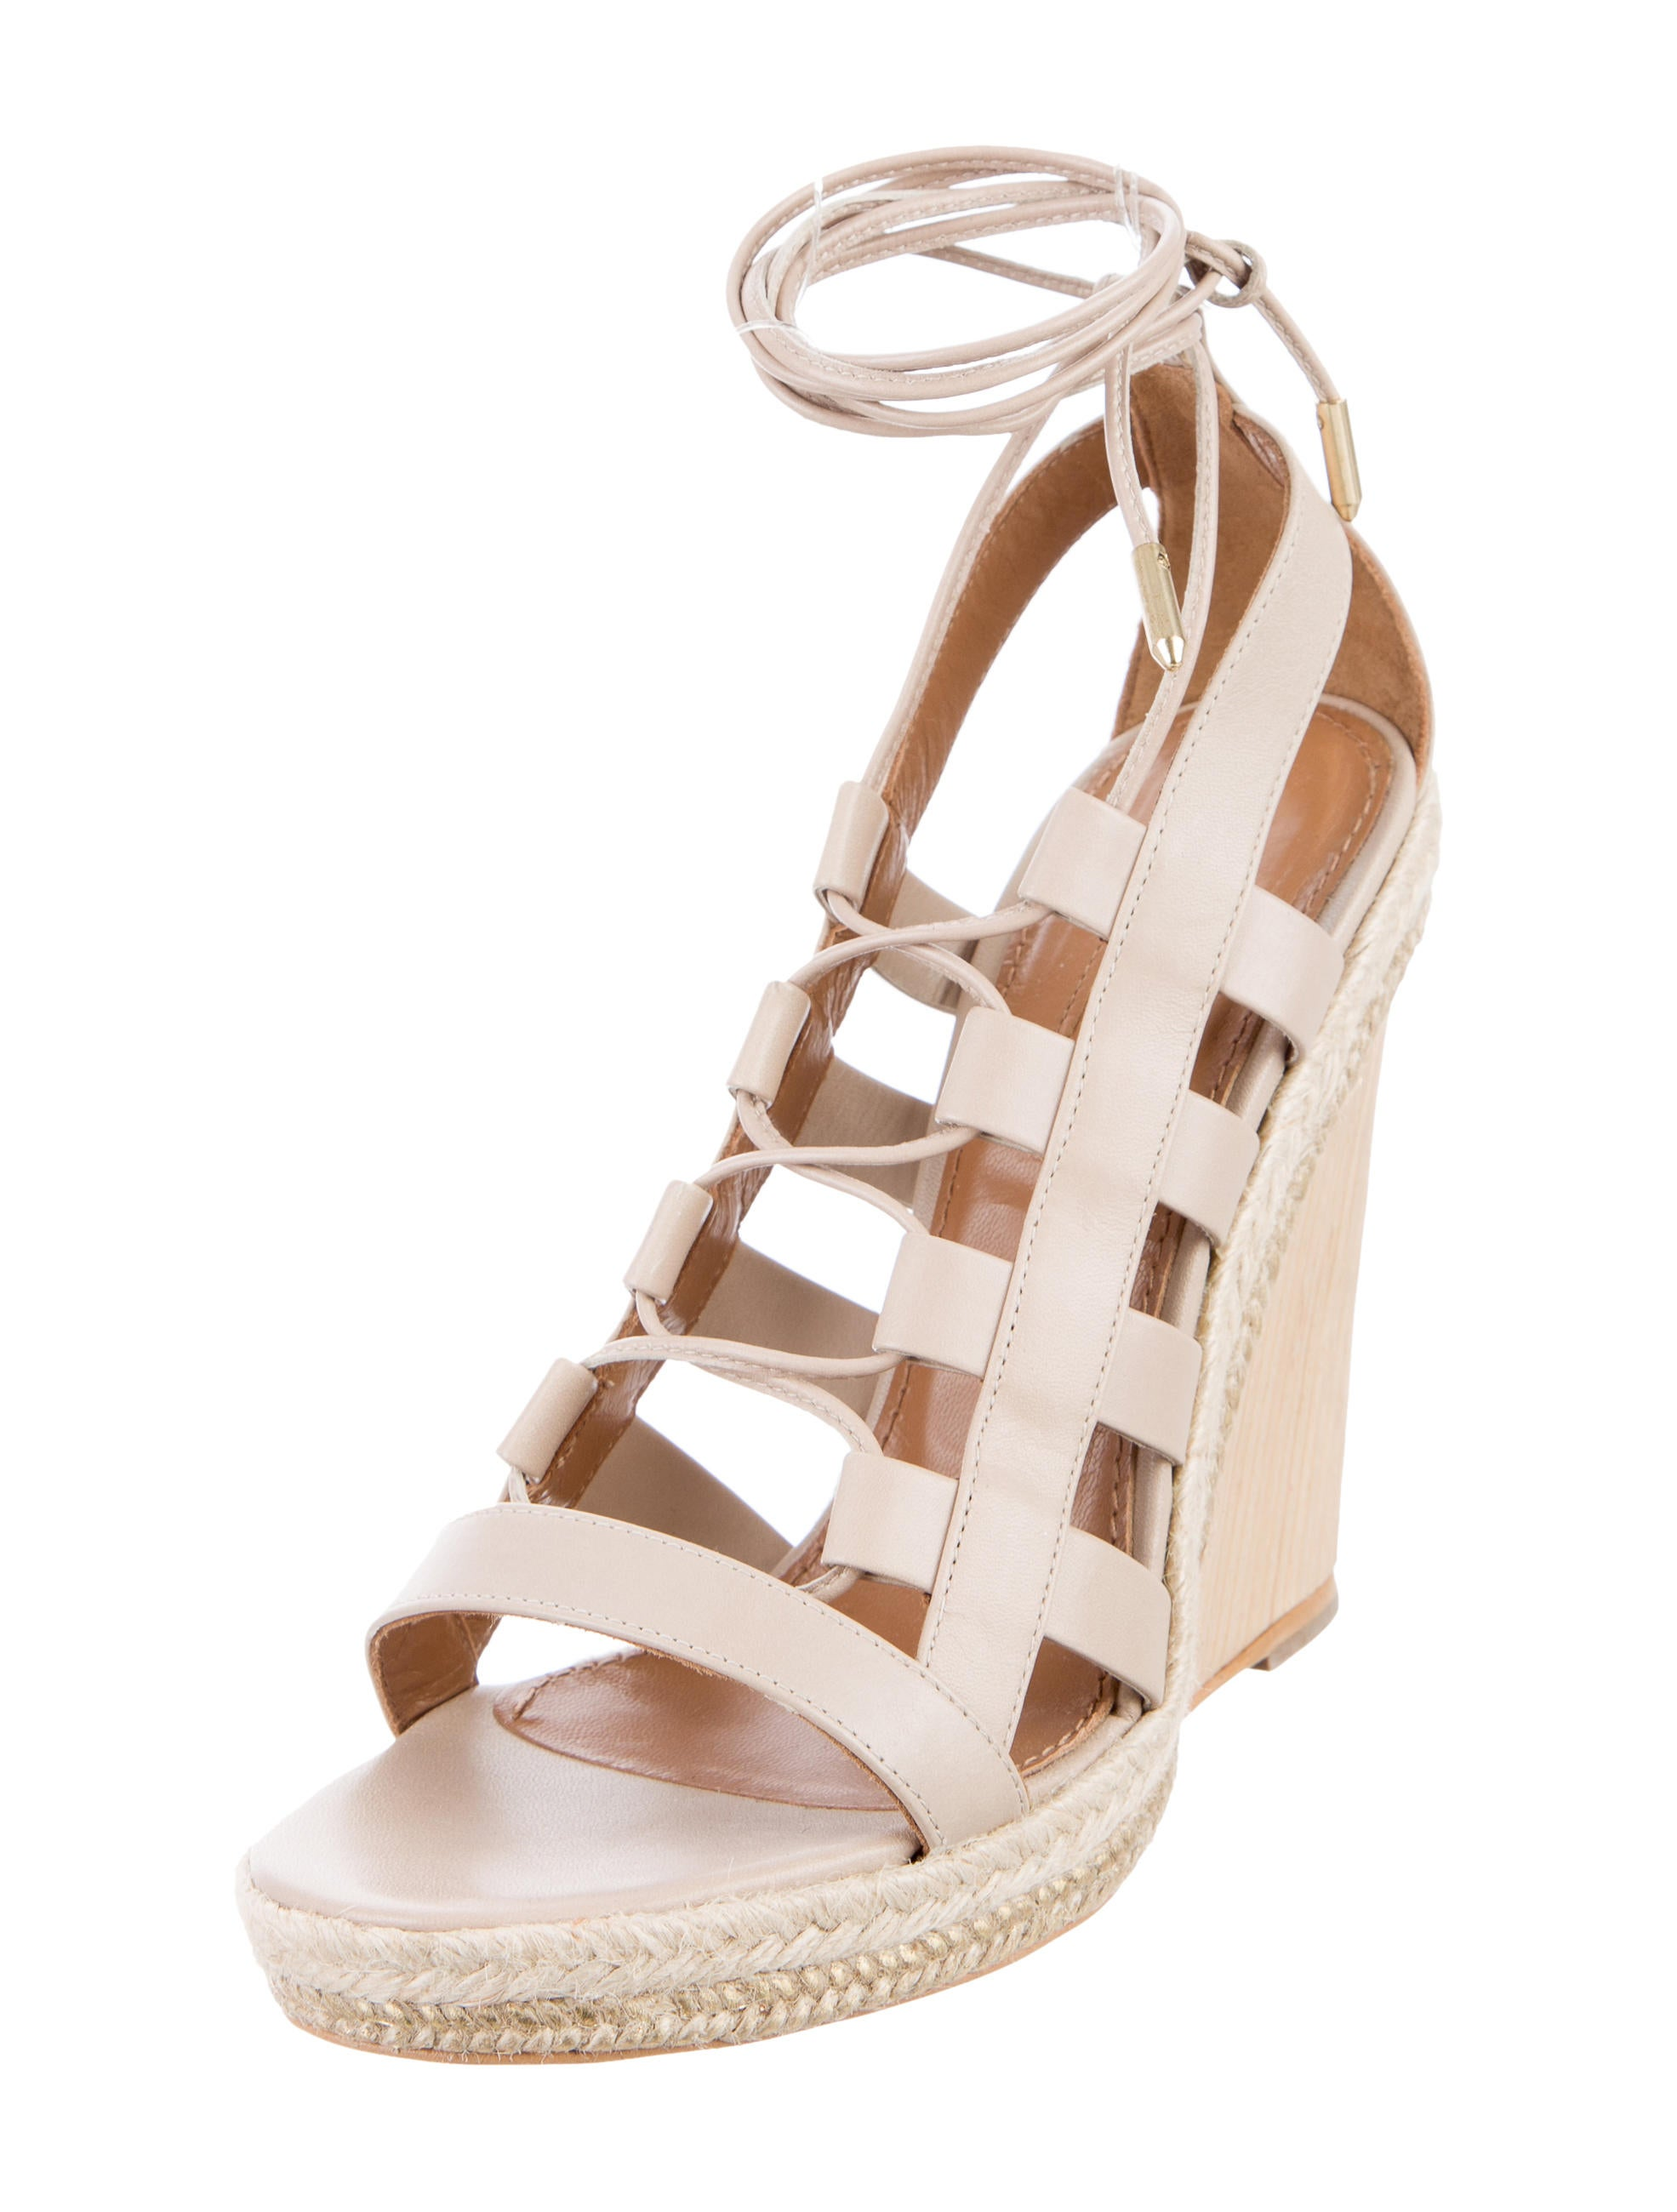 Aquazzura Amazon Wedge Sandals - Shoes - AQZ23060 | The ...